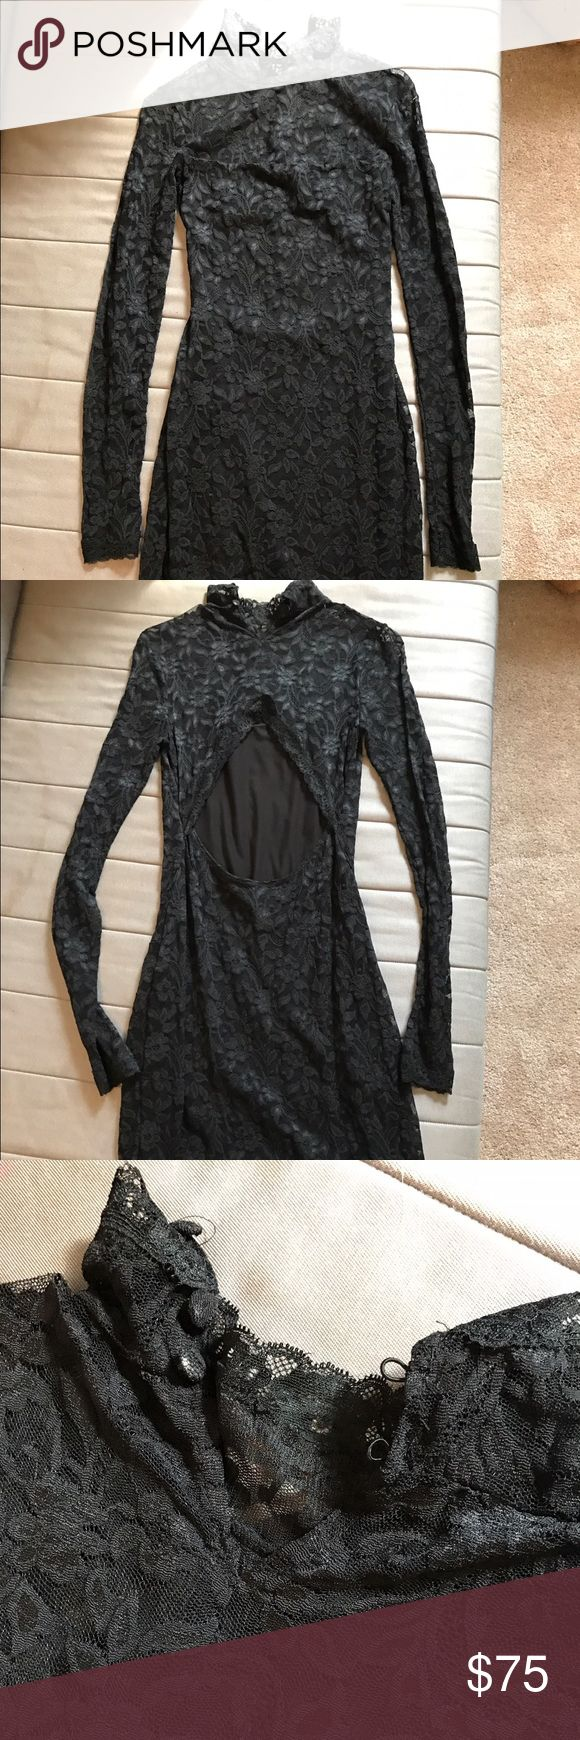 Black Lace Turtleneck Dress Black dress, all lace! Long sleeves, turtleneck buttons in the back, open back. Dress goes to about knee length. Slim fitting. New! Never worn! No tags, was ordered online! Size: small Moda International Dresses Long Sleeve